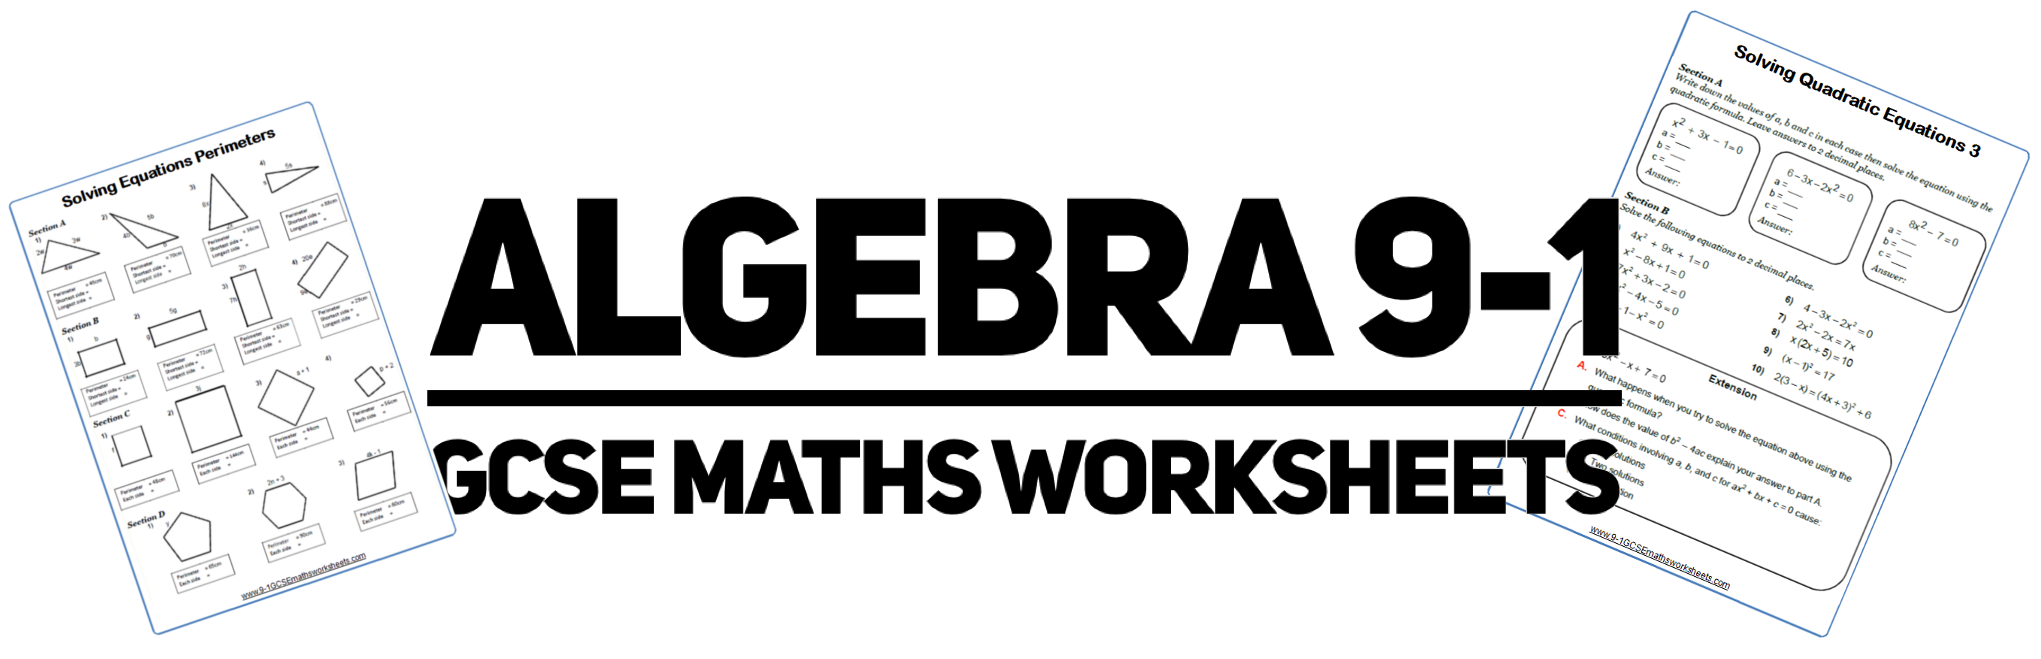 powers maths worksheets